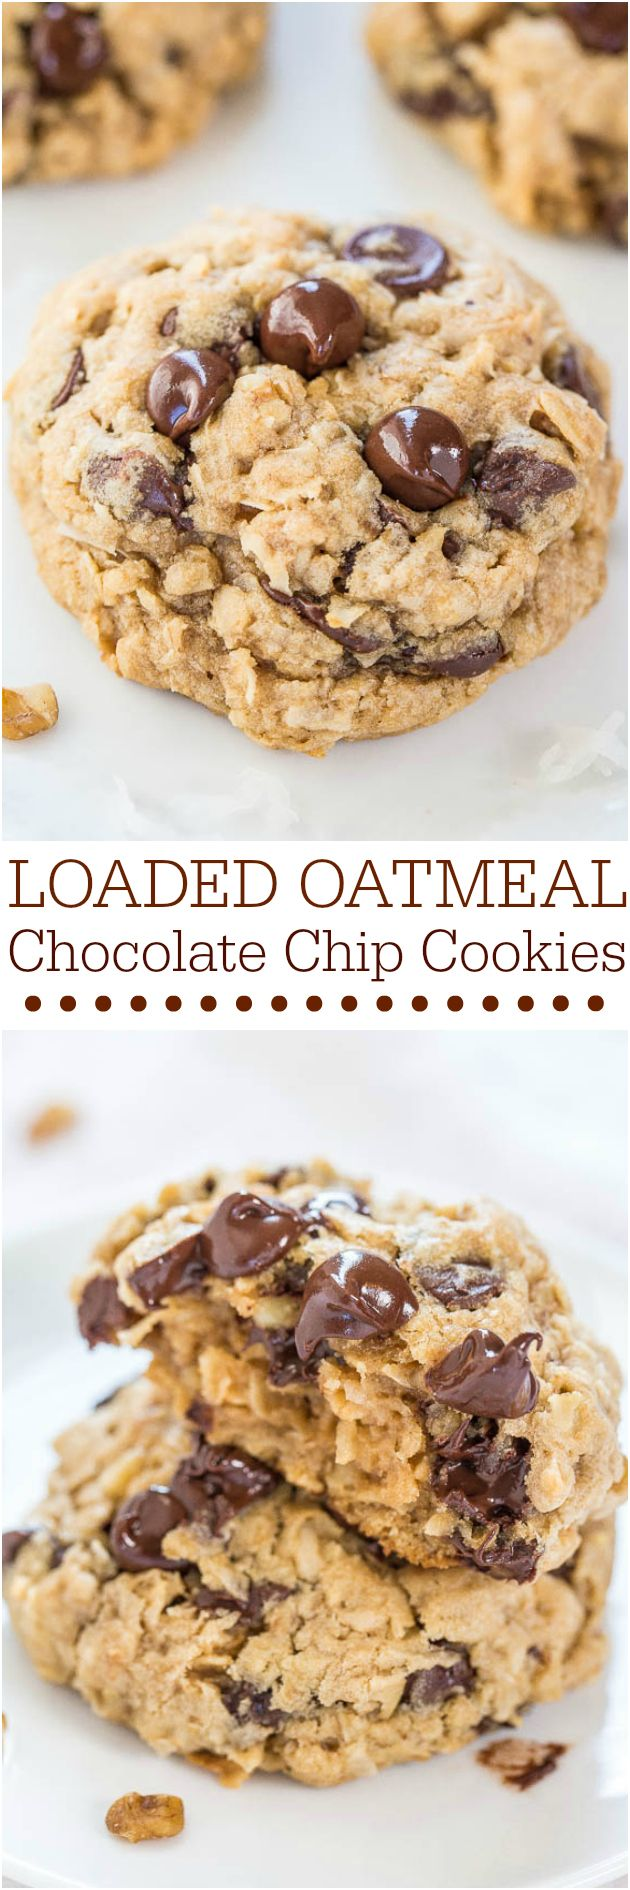 Loaded Oatmeal Chocolate Chip Cookies - Soft, chewy, and loaded with chocolate! Sinking your teeth into a thick, hearty cookie is the best!! They'll be a hit at your #MemorialDay #FathersDay #FourthofJuly parties!